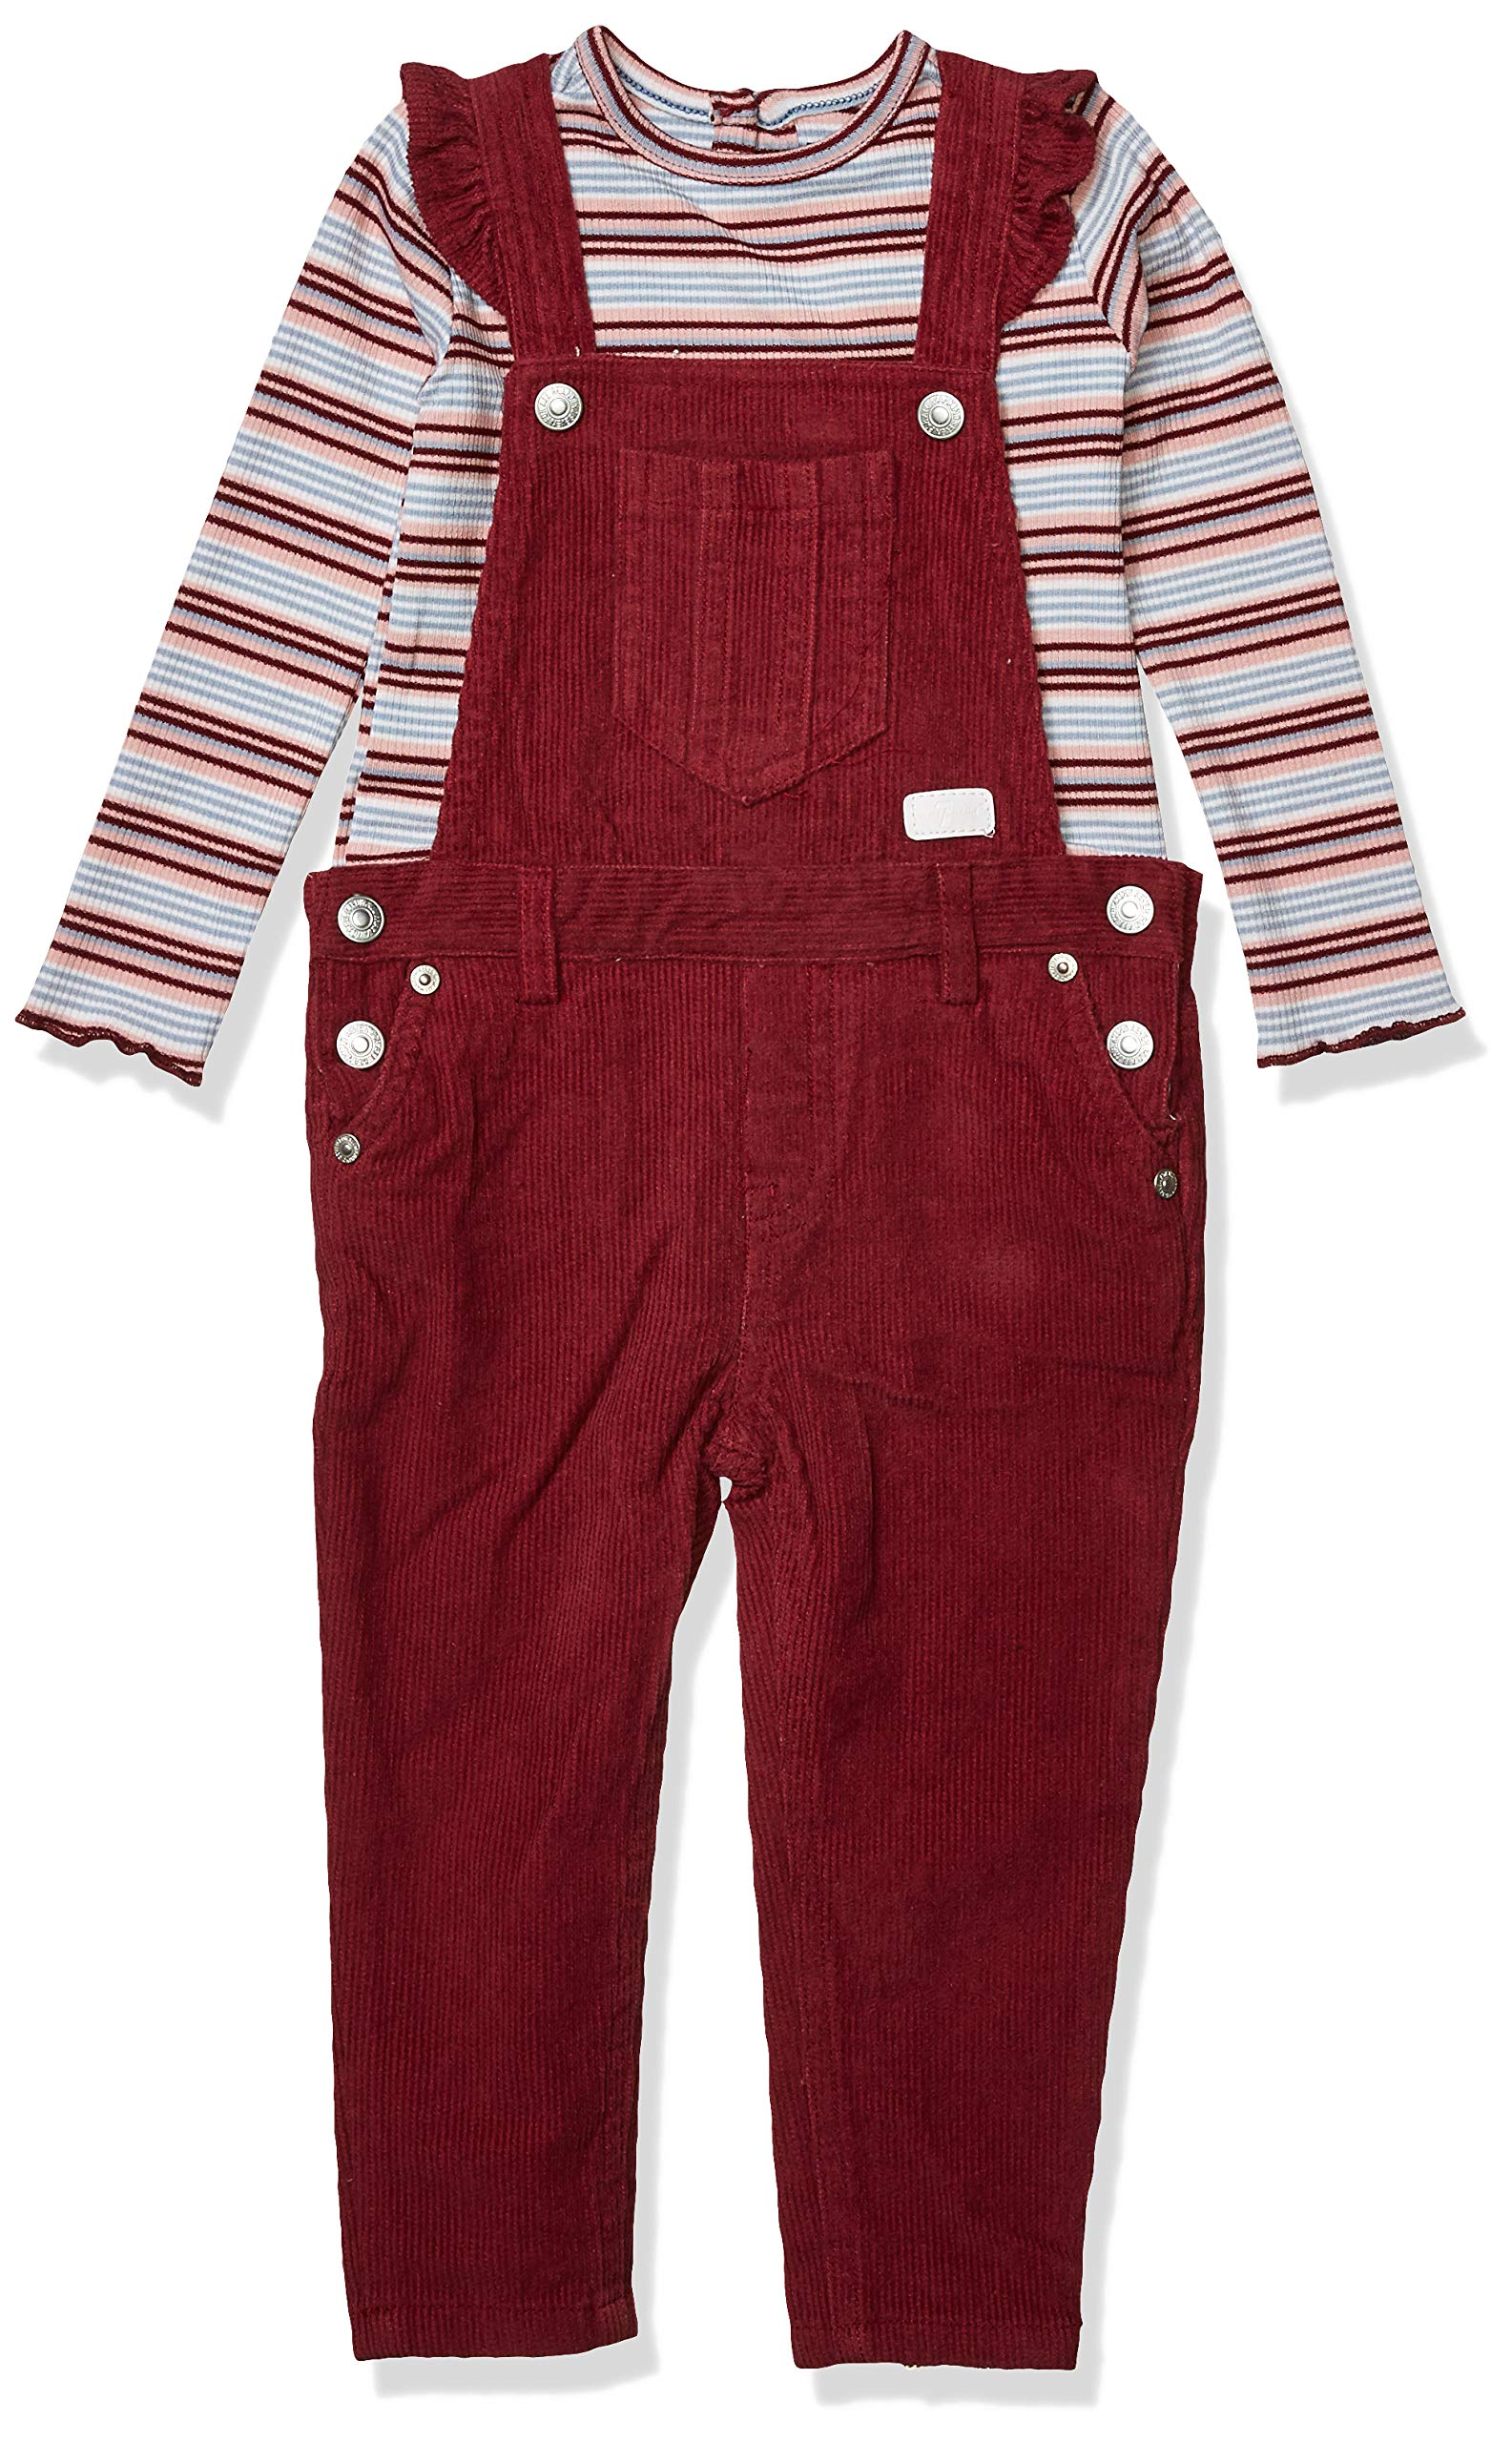 7 For All Mankind Girls' 2 Piece Set